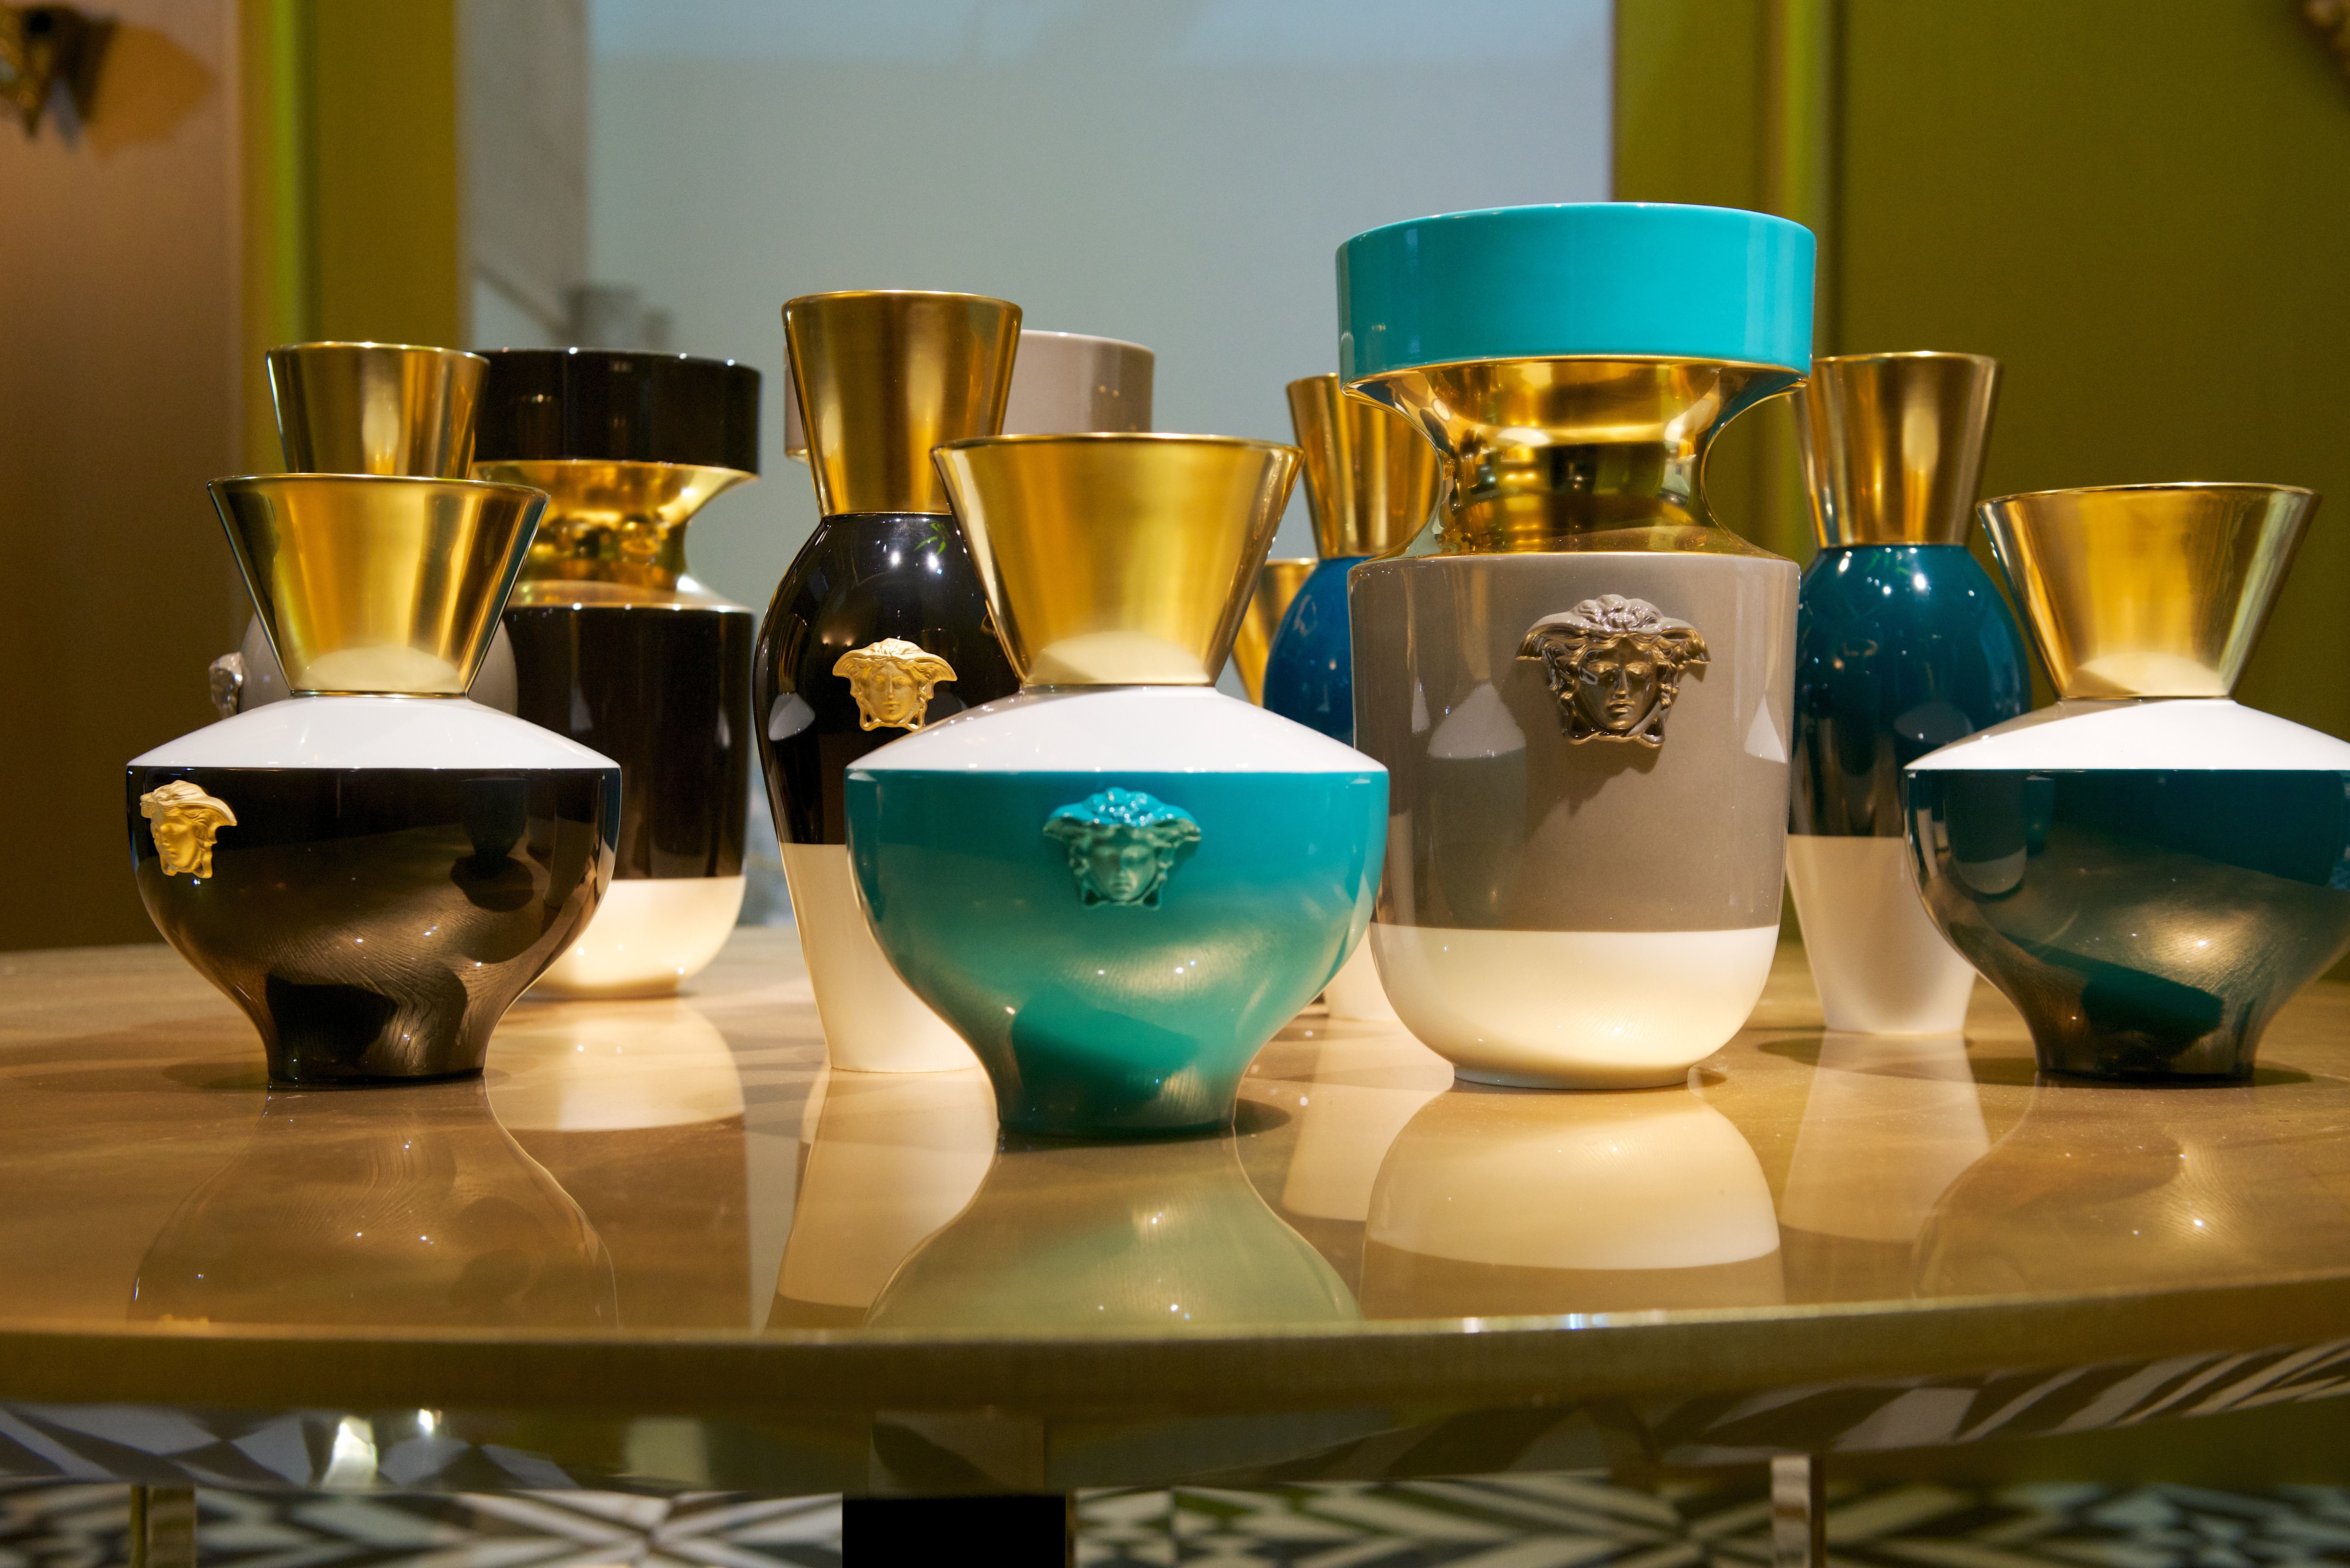 Mobili Versace ~ Vases from the new versace home collection versacehomewear